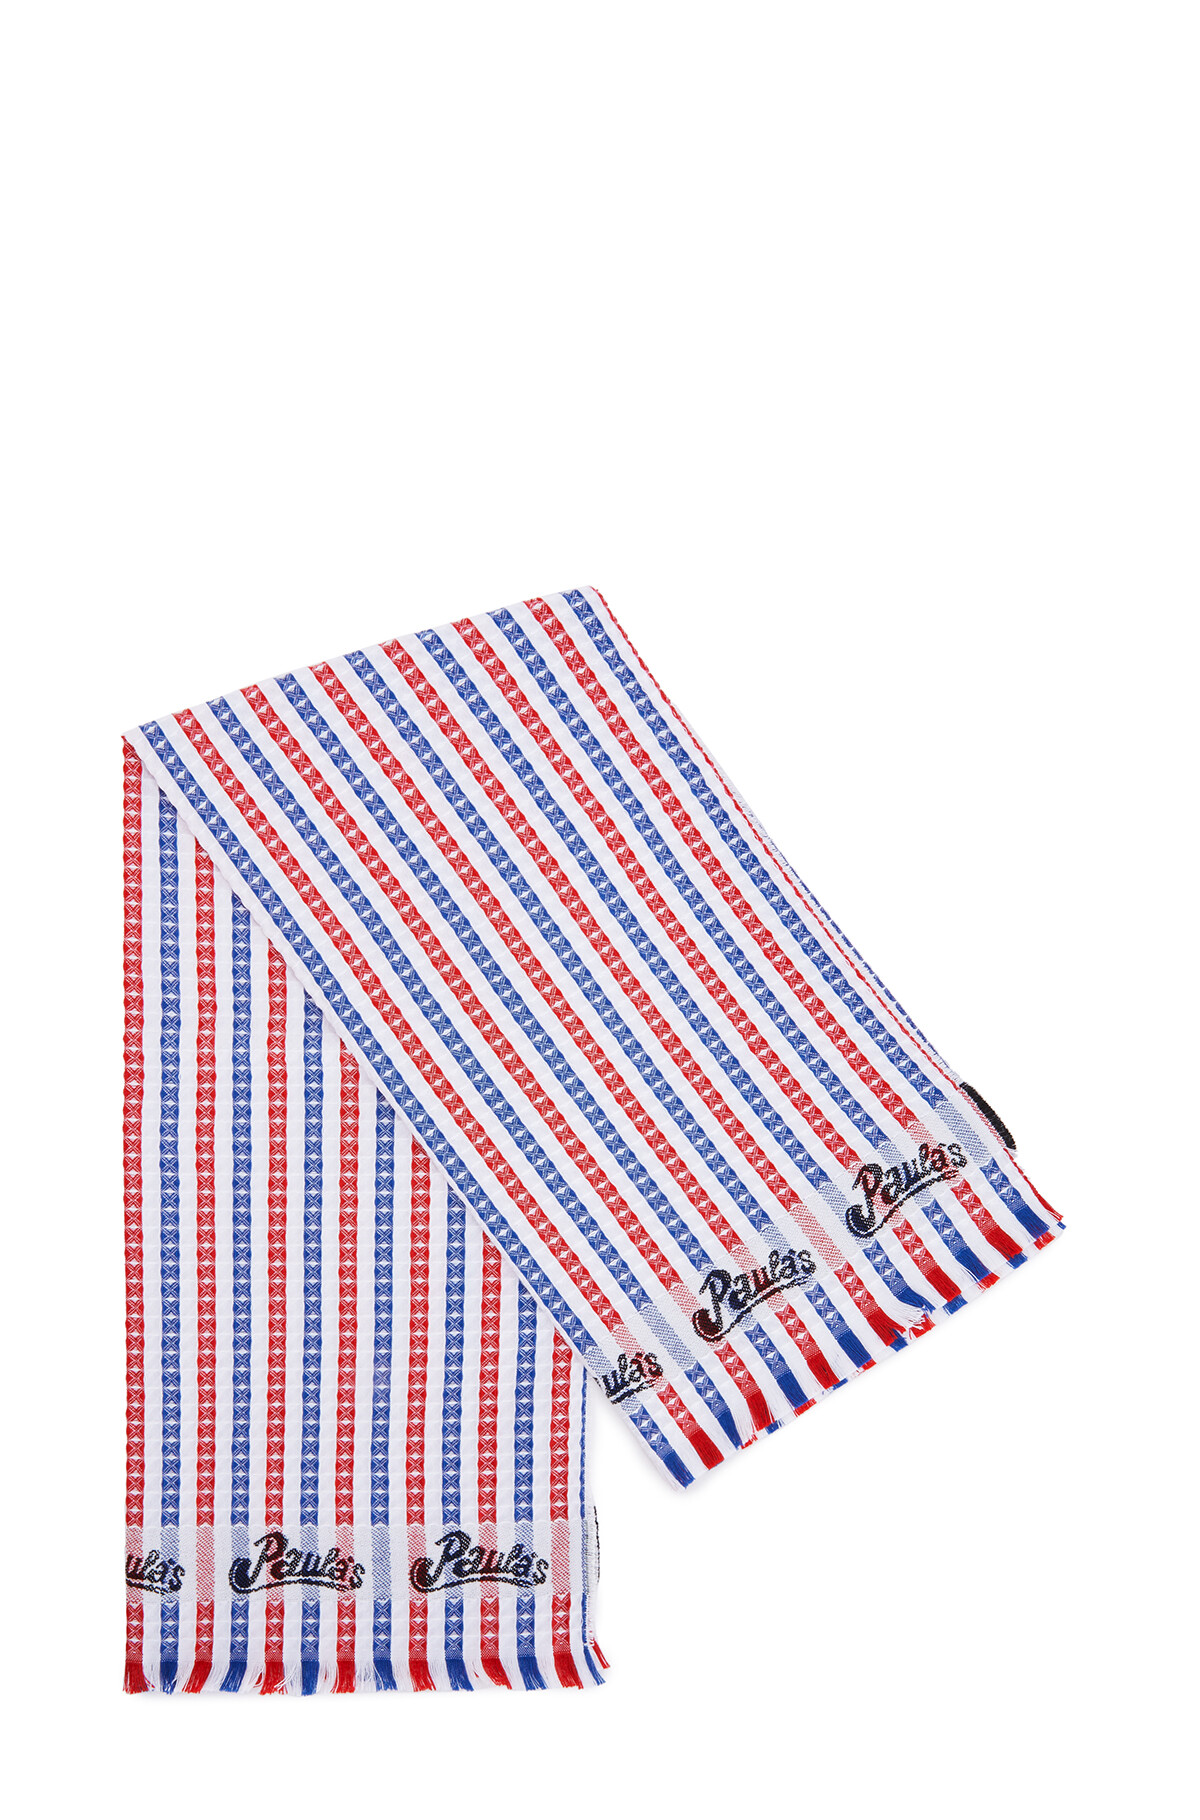 LOEWE 42Cm X 92Cm Waffle Towel In Striped Cotton Red/Blue front